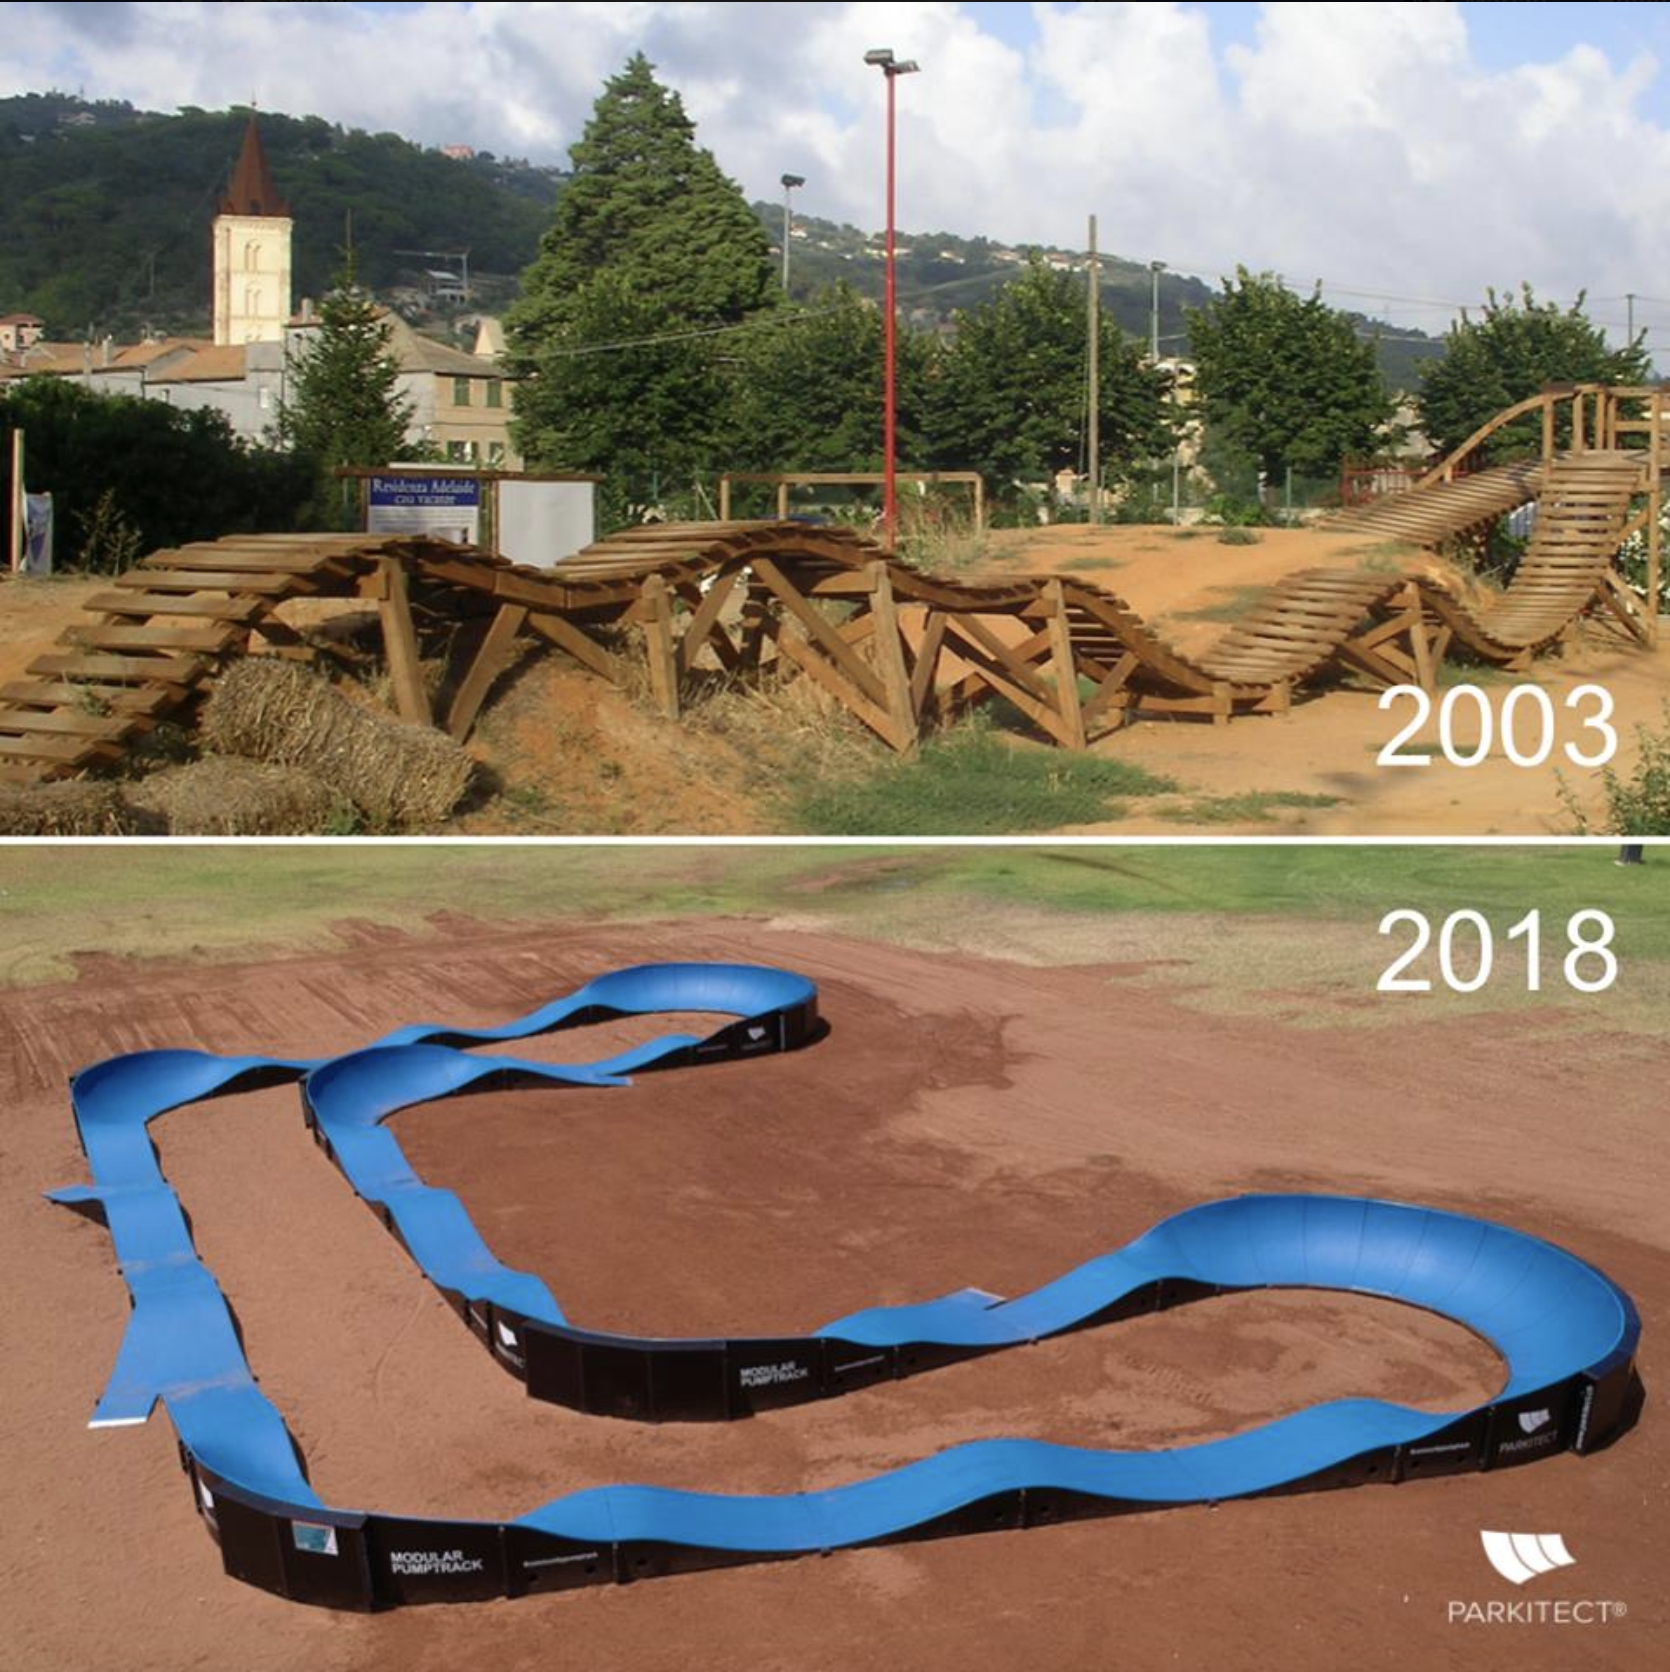 PARKITECT pumptracks then and now